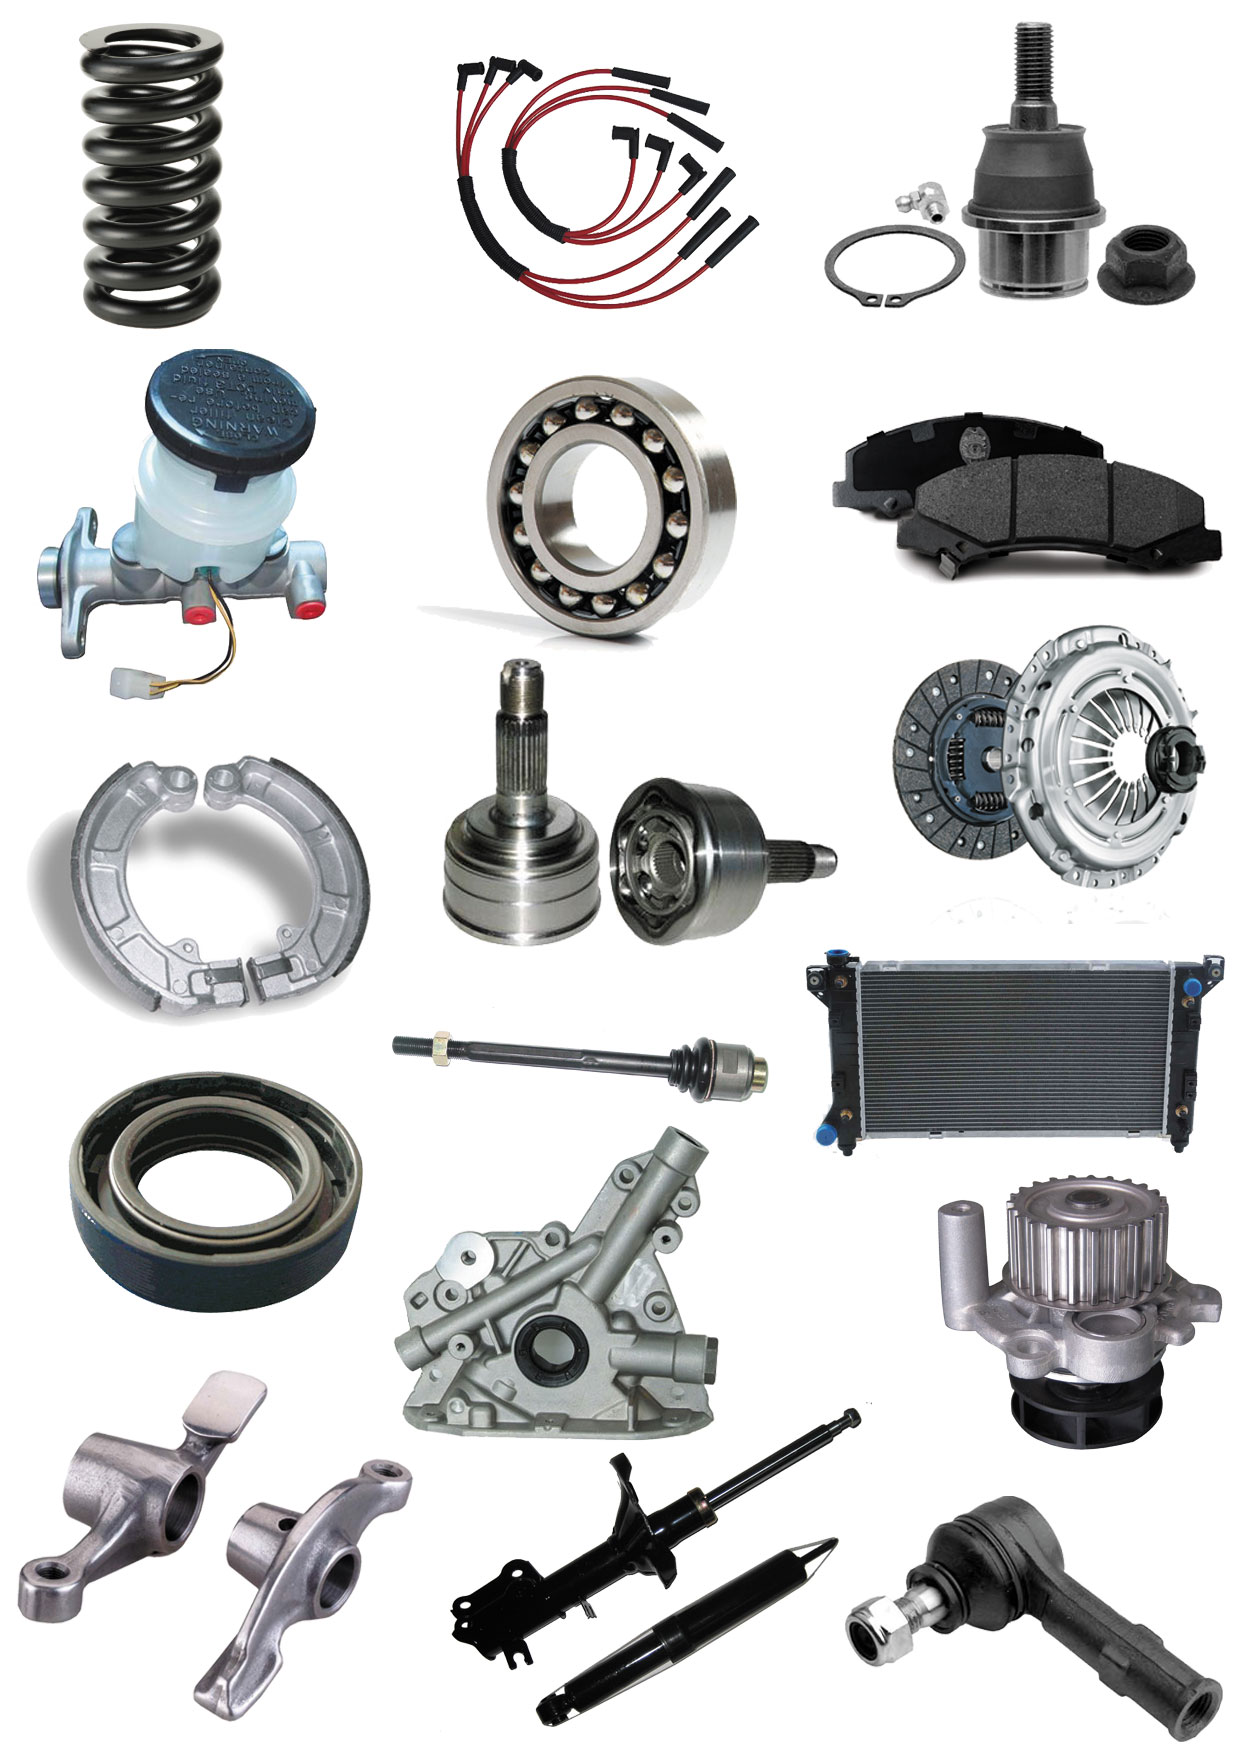 Car parts - CARSPART